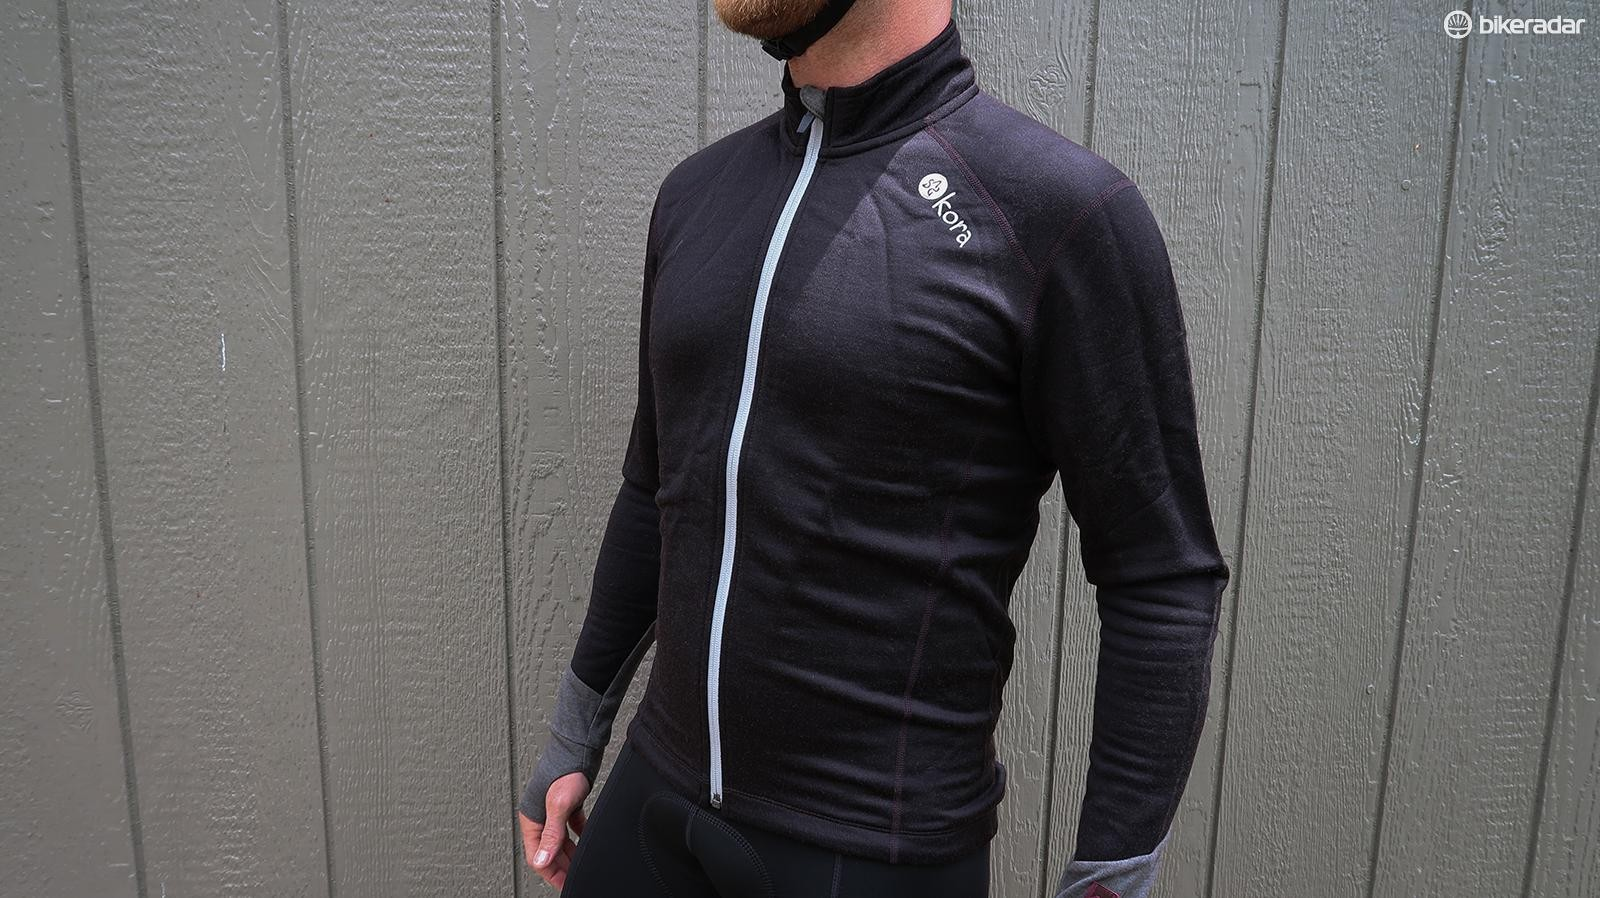 The Kora Azog Jersey is a heavyweight top made from yak wool